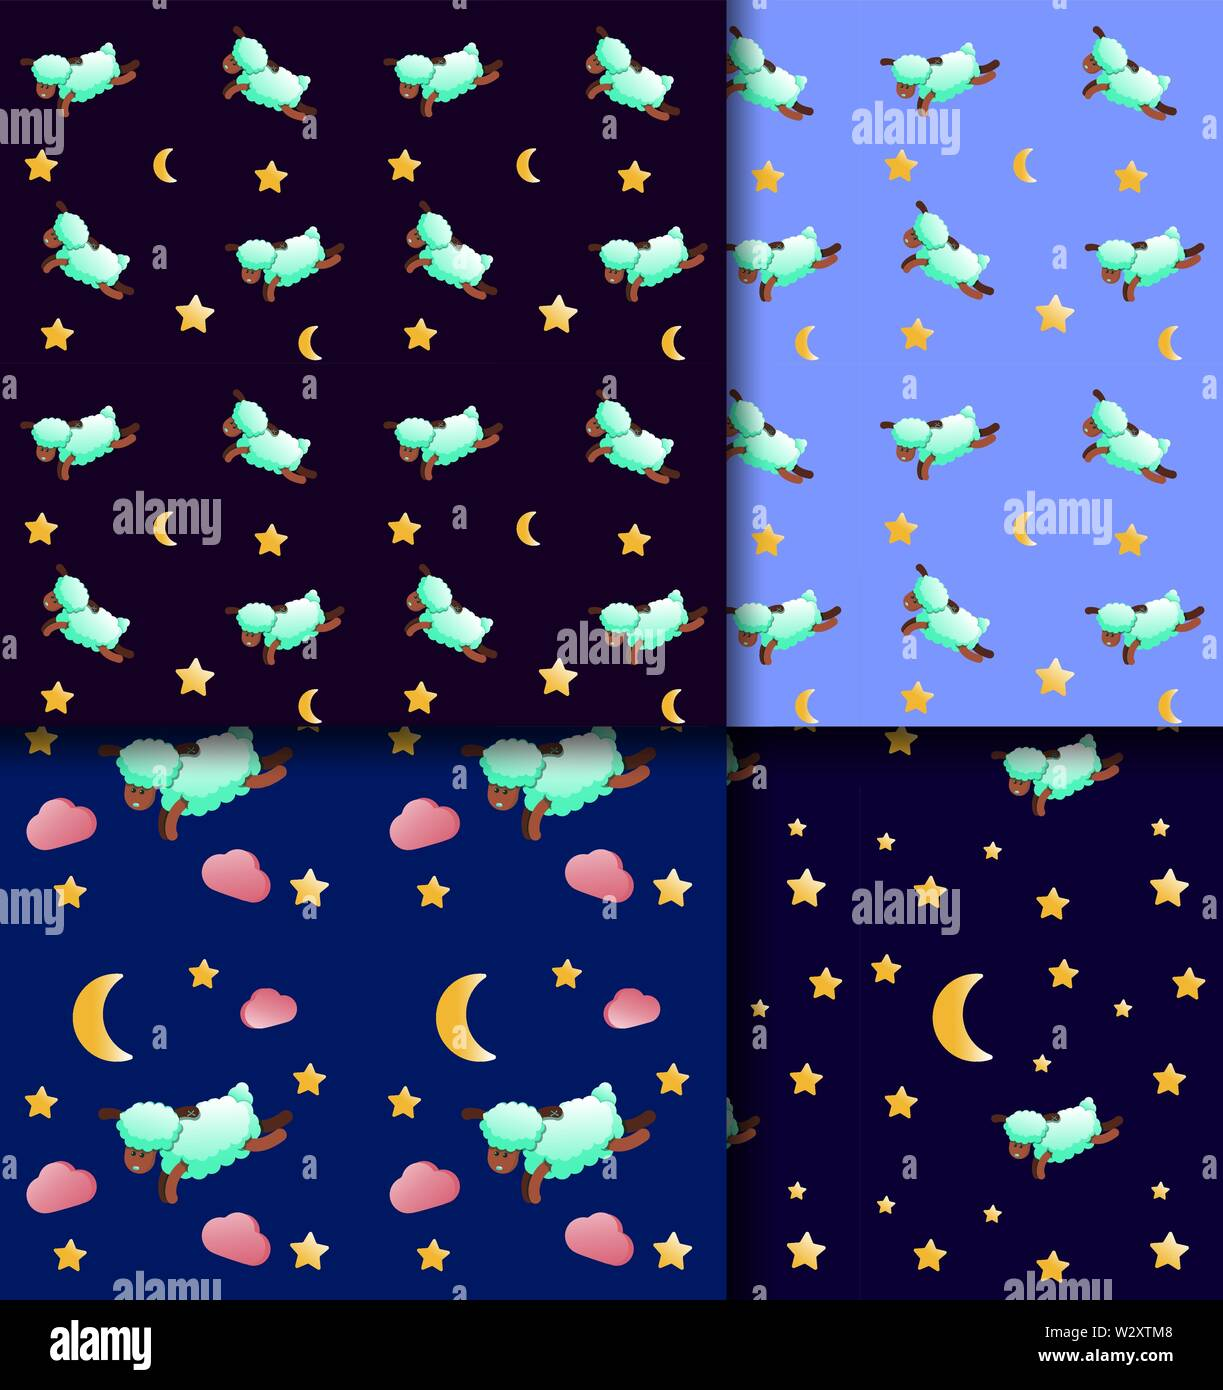 Cute sleepy sheep. Seamless pattern for baby textiles. Cartoon animal character. Set of prints on blue and black background. Stars and moon. funny design for fabric. Turquoise wool. Vector illustration. Pink clouds. Repeating design for pajamas Stock Vector